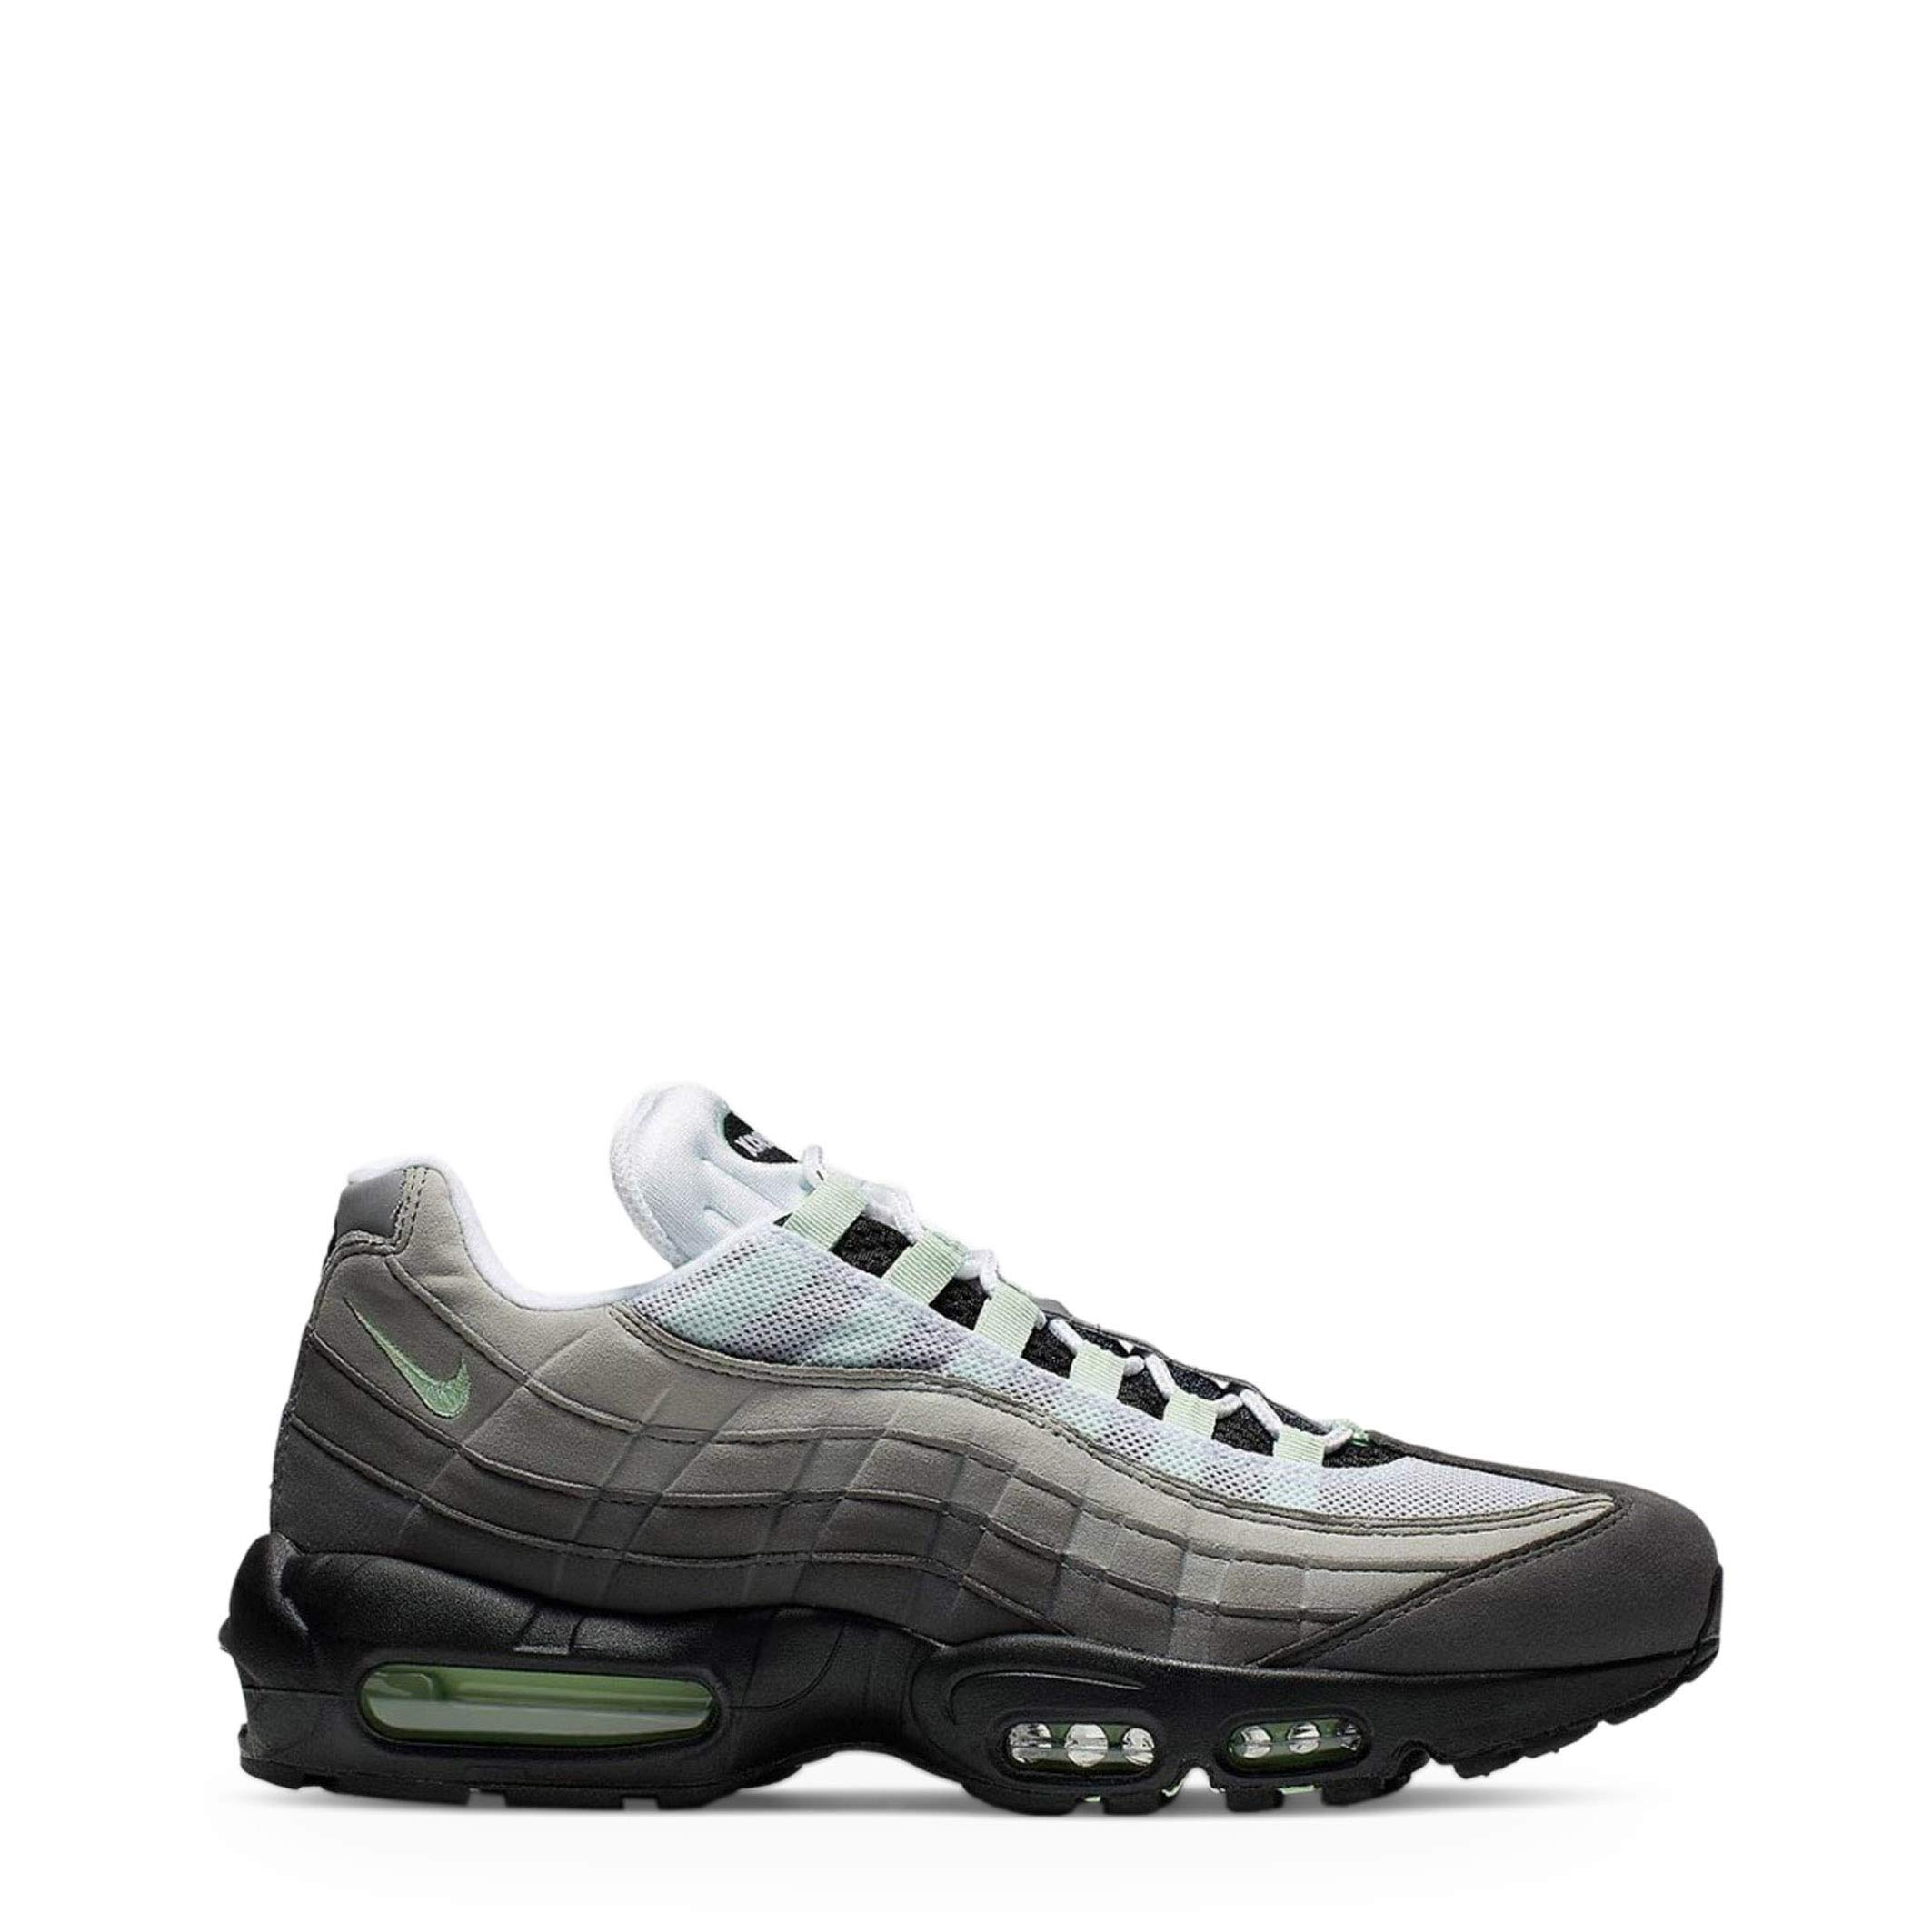 NIKE AIR MAX 95 WHITE FRESH MINT GRANITE DUST CD7495-101 Mens Causal Sneakers